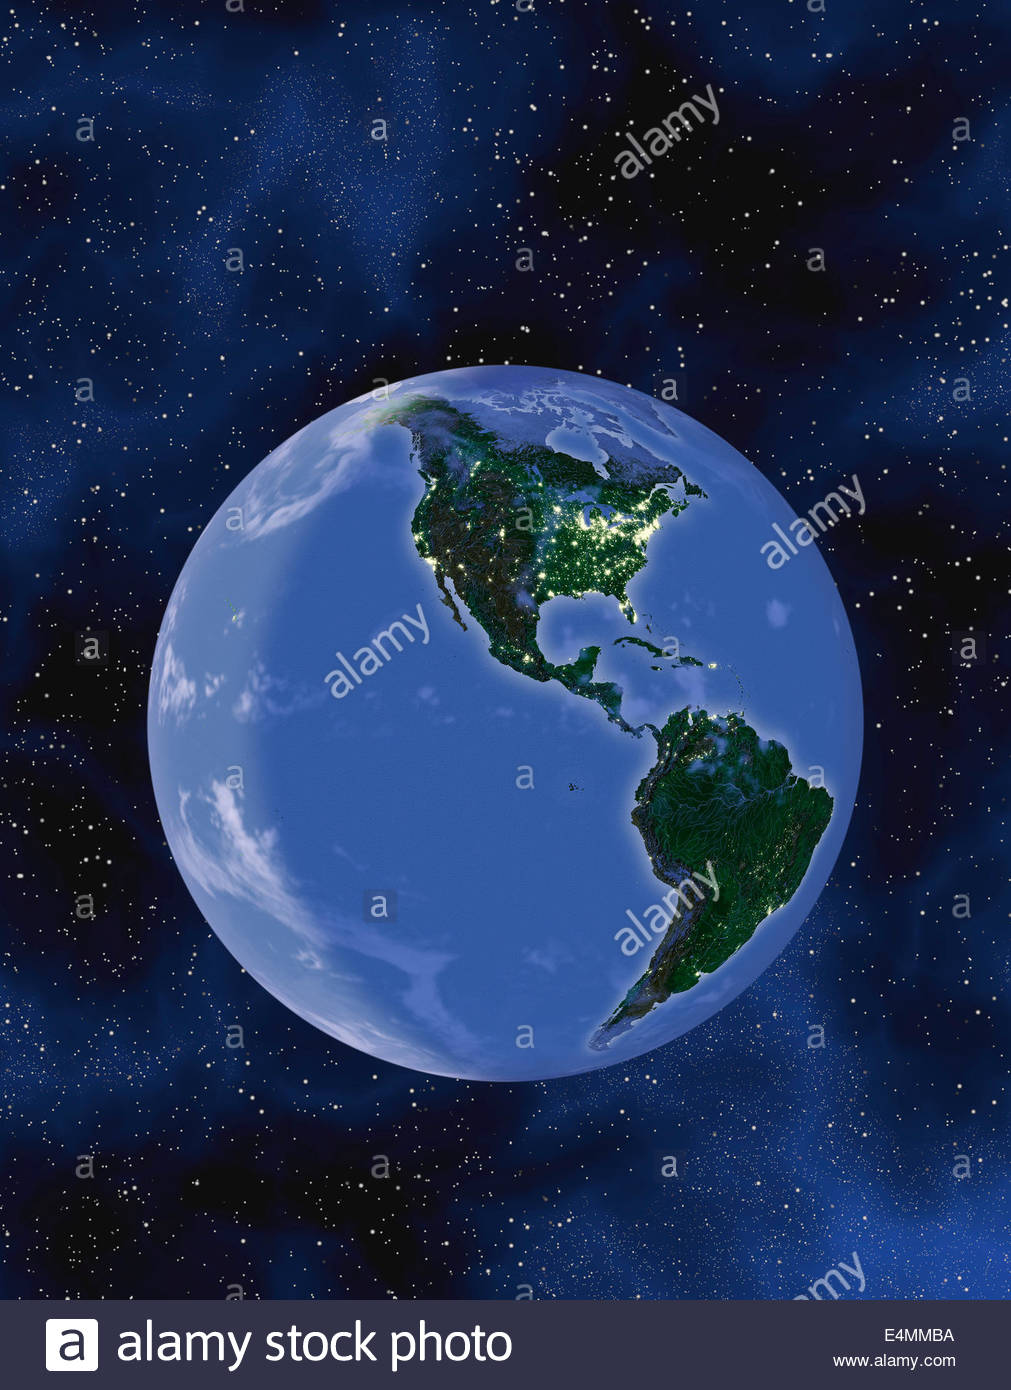 relief-globe-of-north-and-south-america-